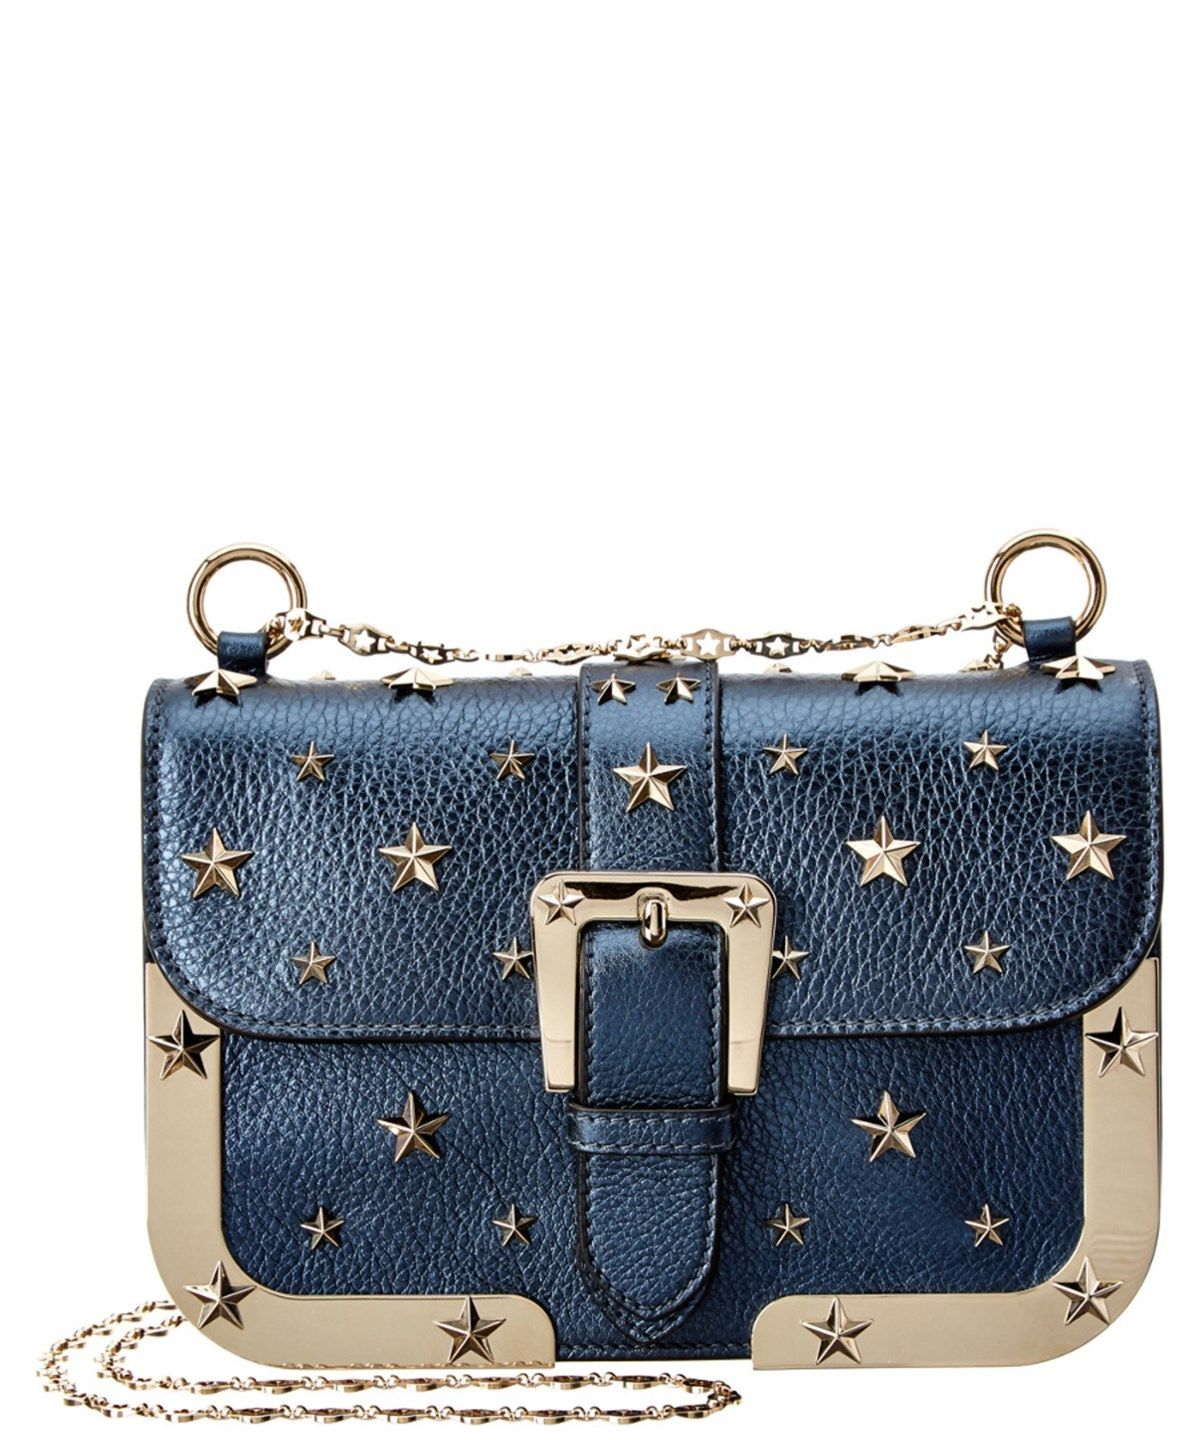 cfc87f3df2 RED VALENTINO Red Valentino Studded Metallic Leather Shoulder Bag'. # redvalentino #bags #shoulder bags #hand bags #lining #leather #metallic #